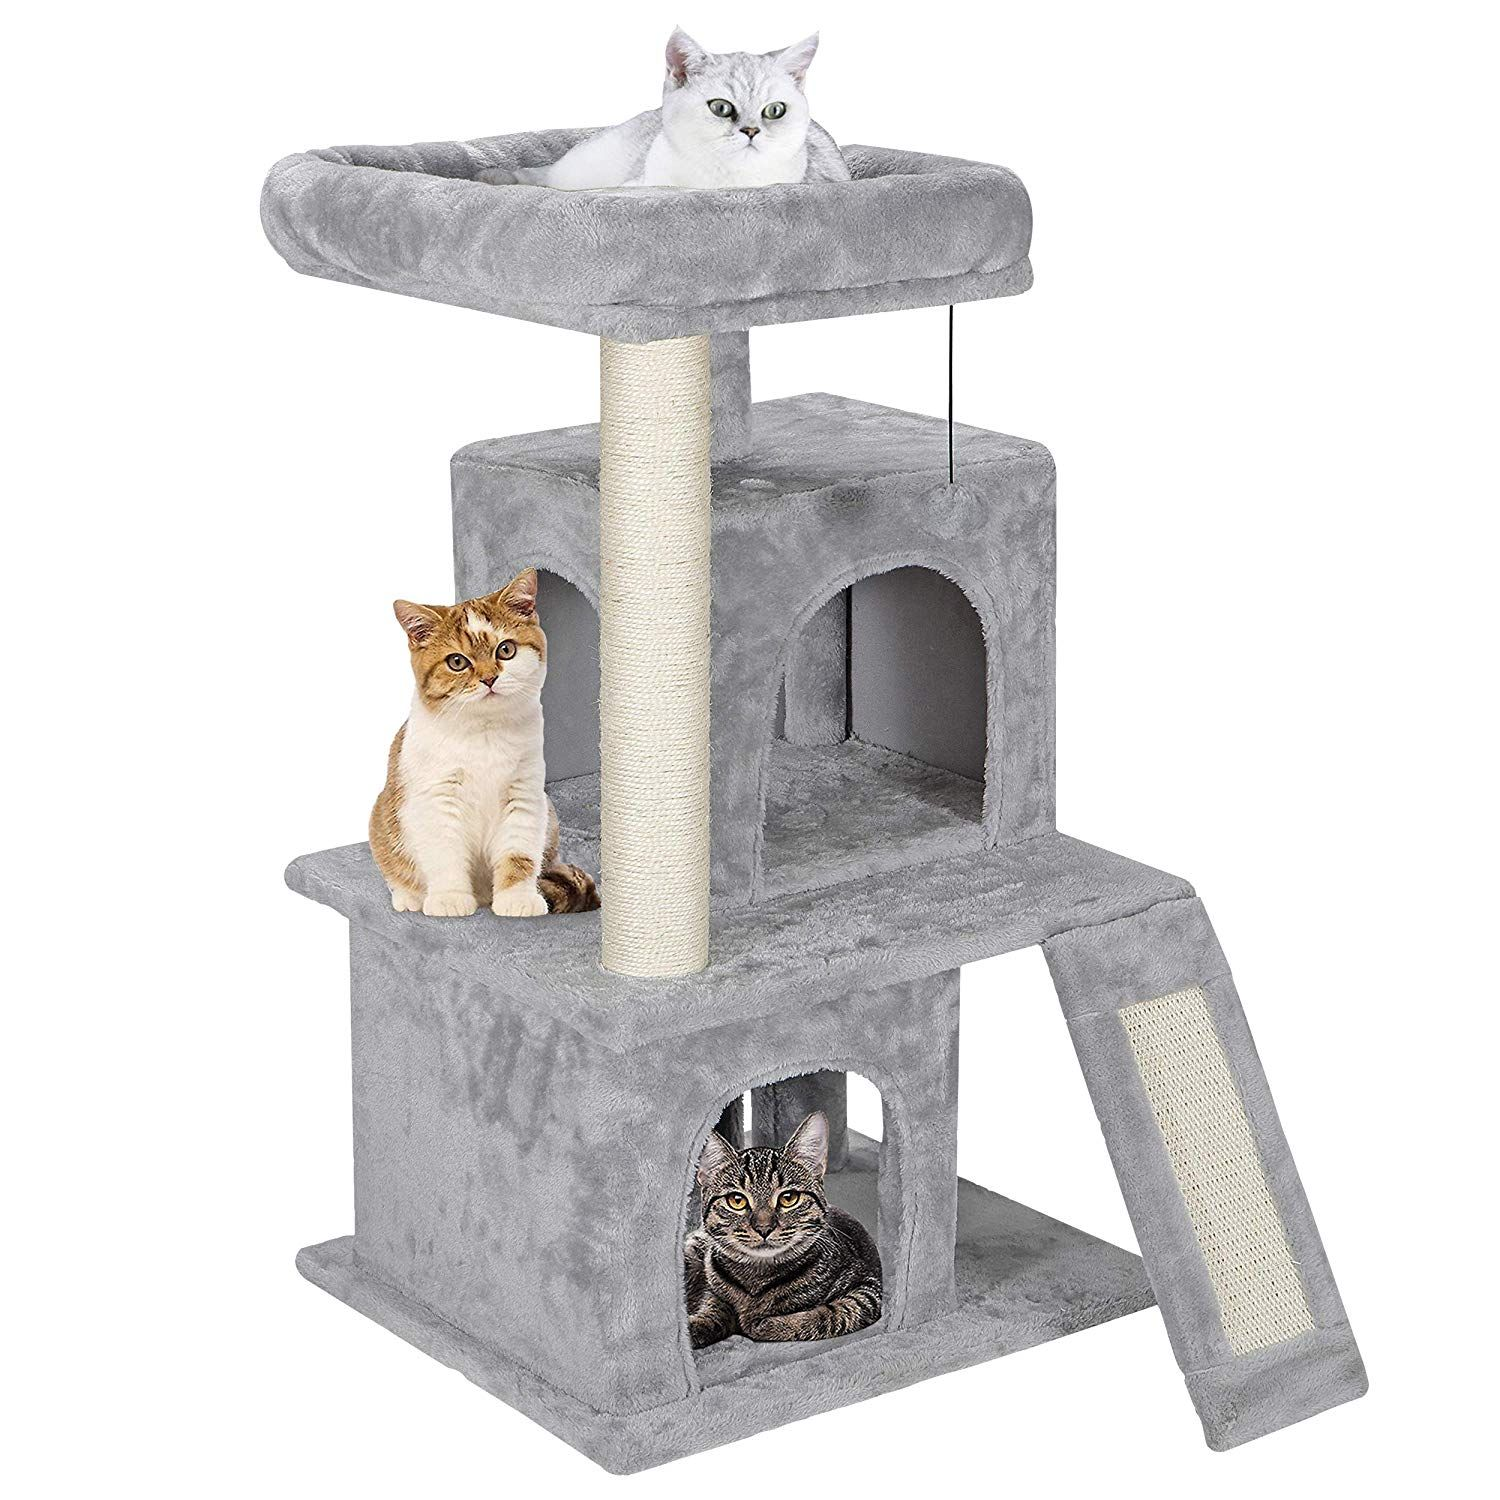 Nova Microdermabrasion 33 9 Cat Tree Activity Tower Stand With Plush Perch And Sisal Posts For Kittens Pet Kitty Play Large Cat Tree Kitten House Kitten Tower